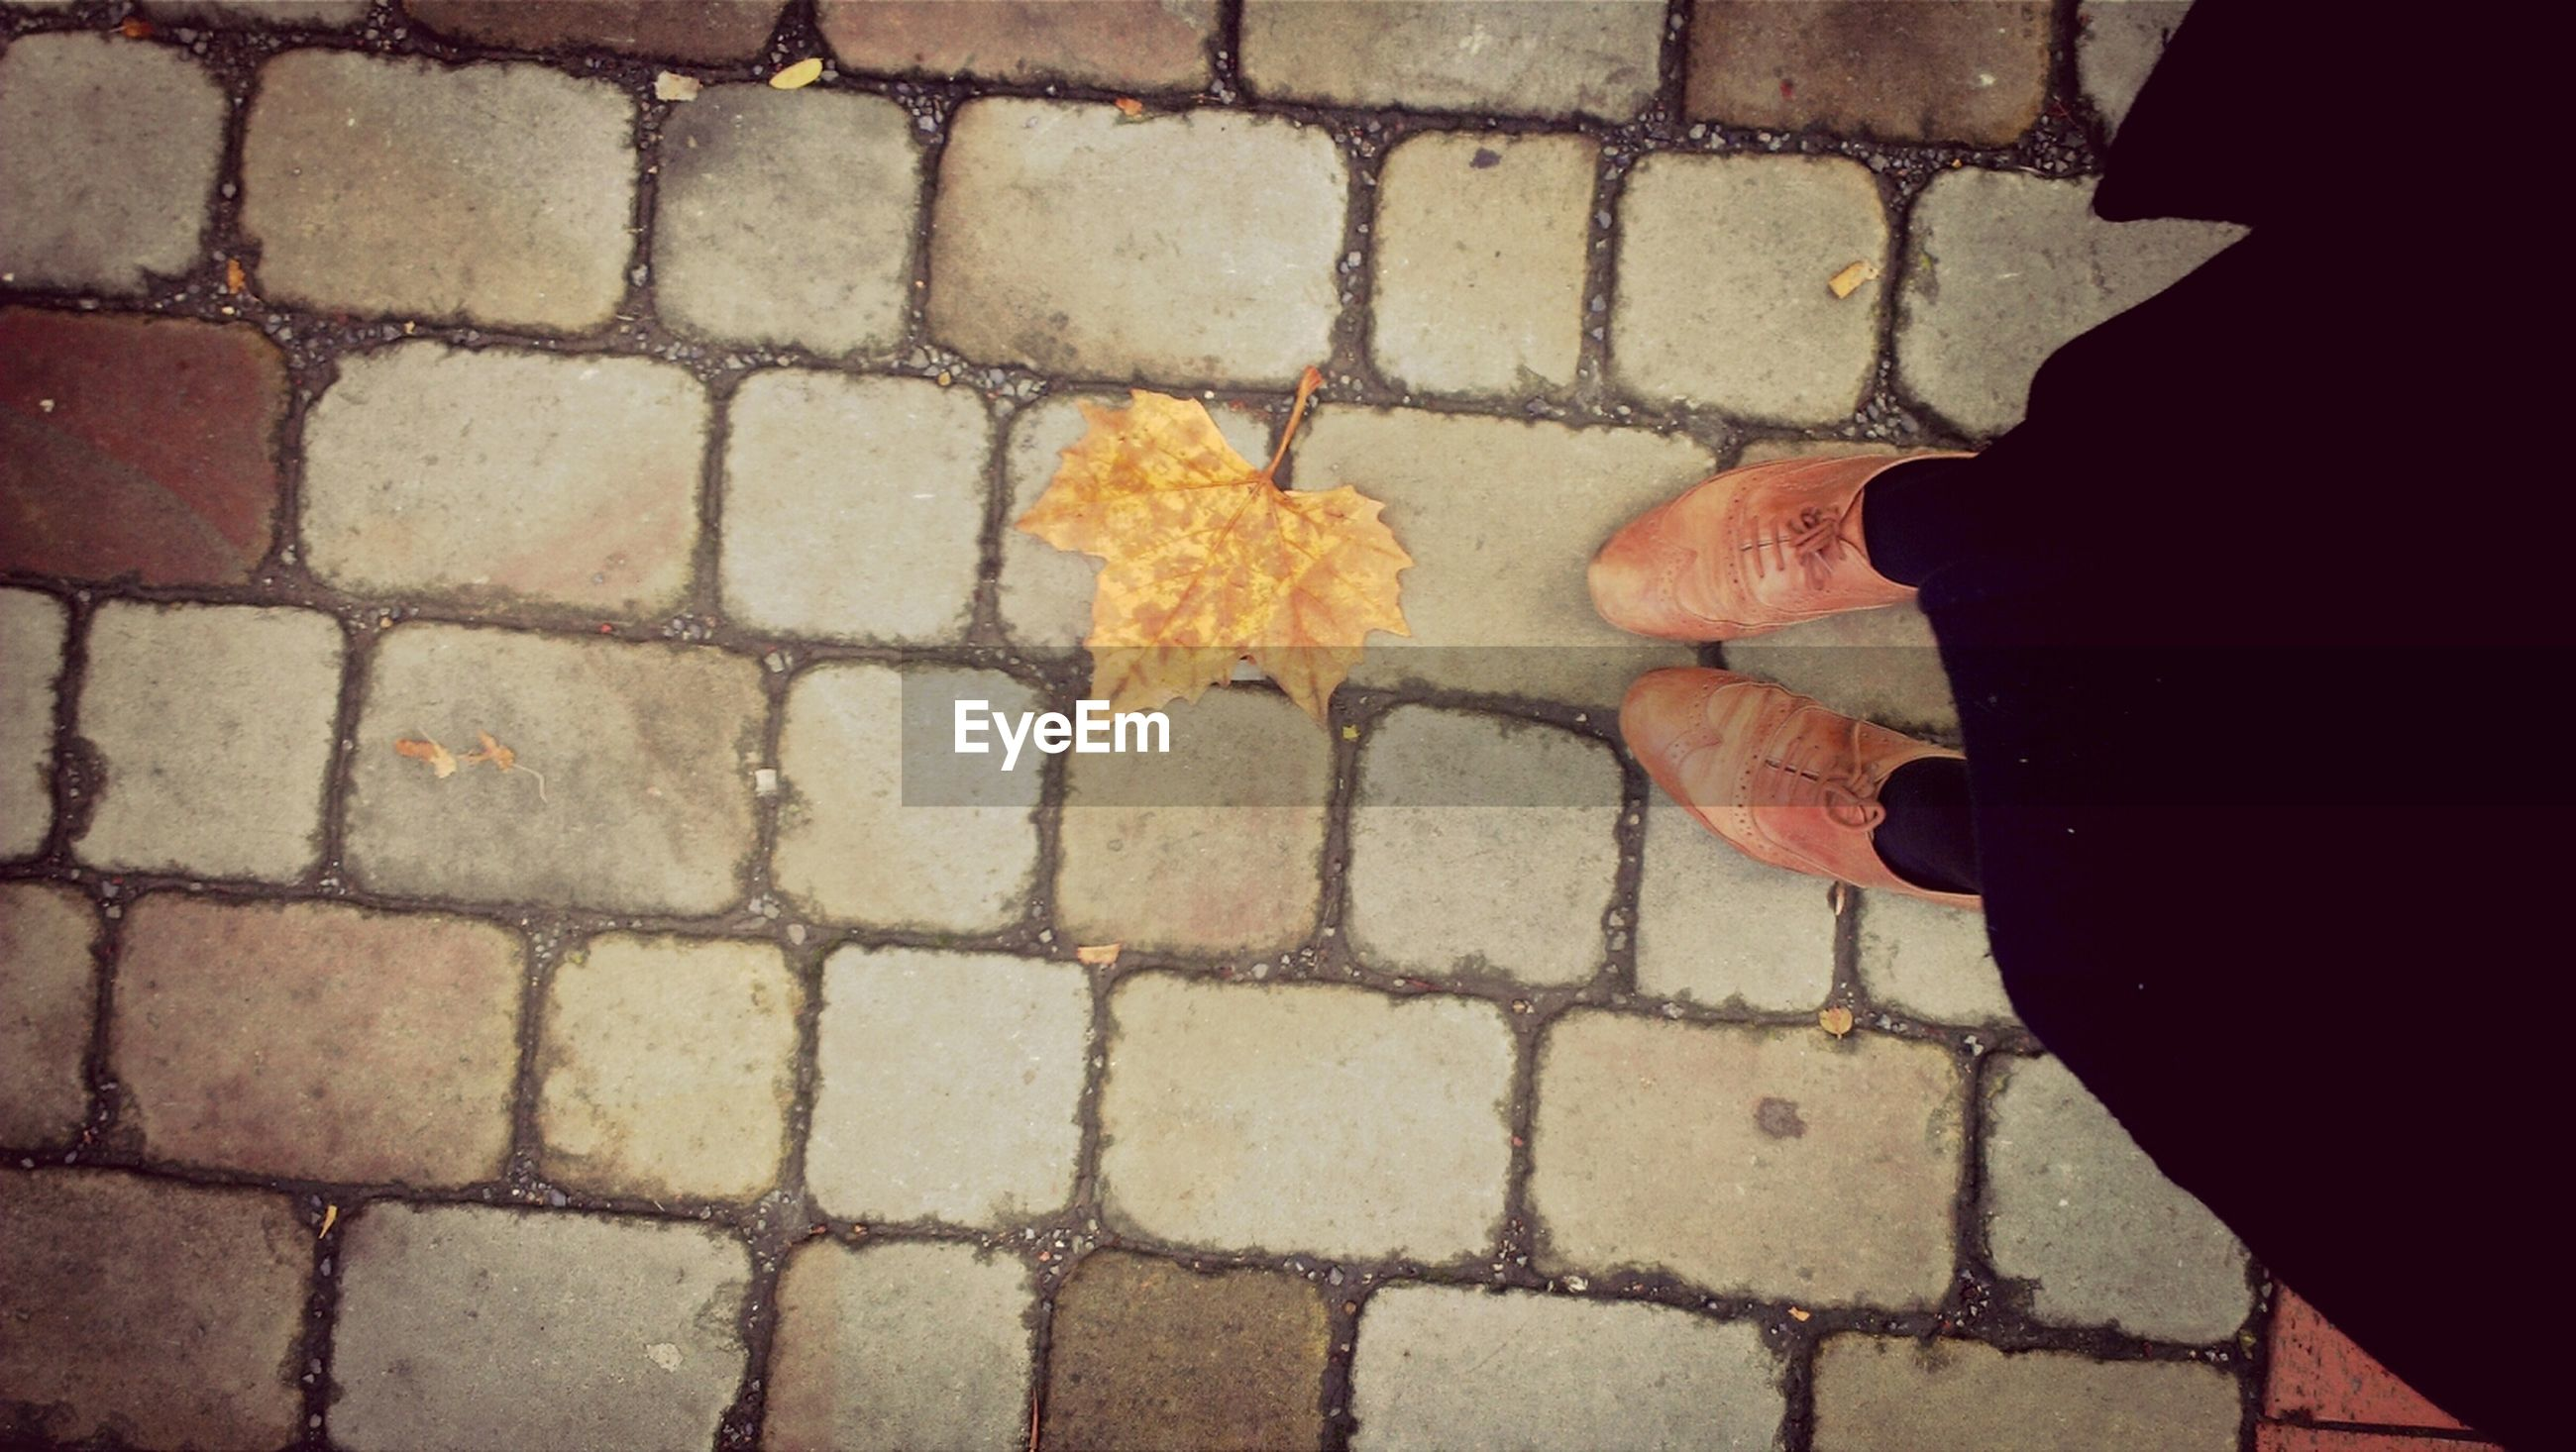 cobblestone, street, paving stone, lifestyles, low section, men, high angle view, unrecognizable person, standing, person, pattern, day, textured, outdoors, footpath, leisure activity, sidewalk